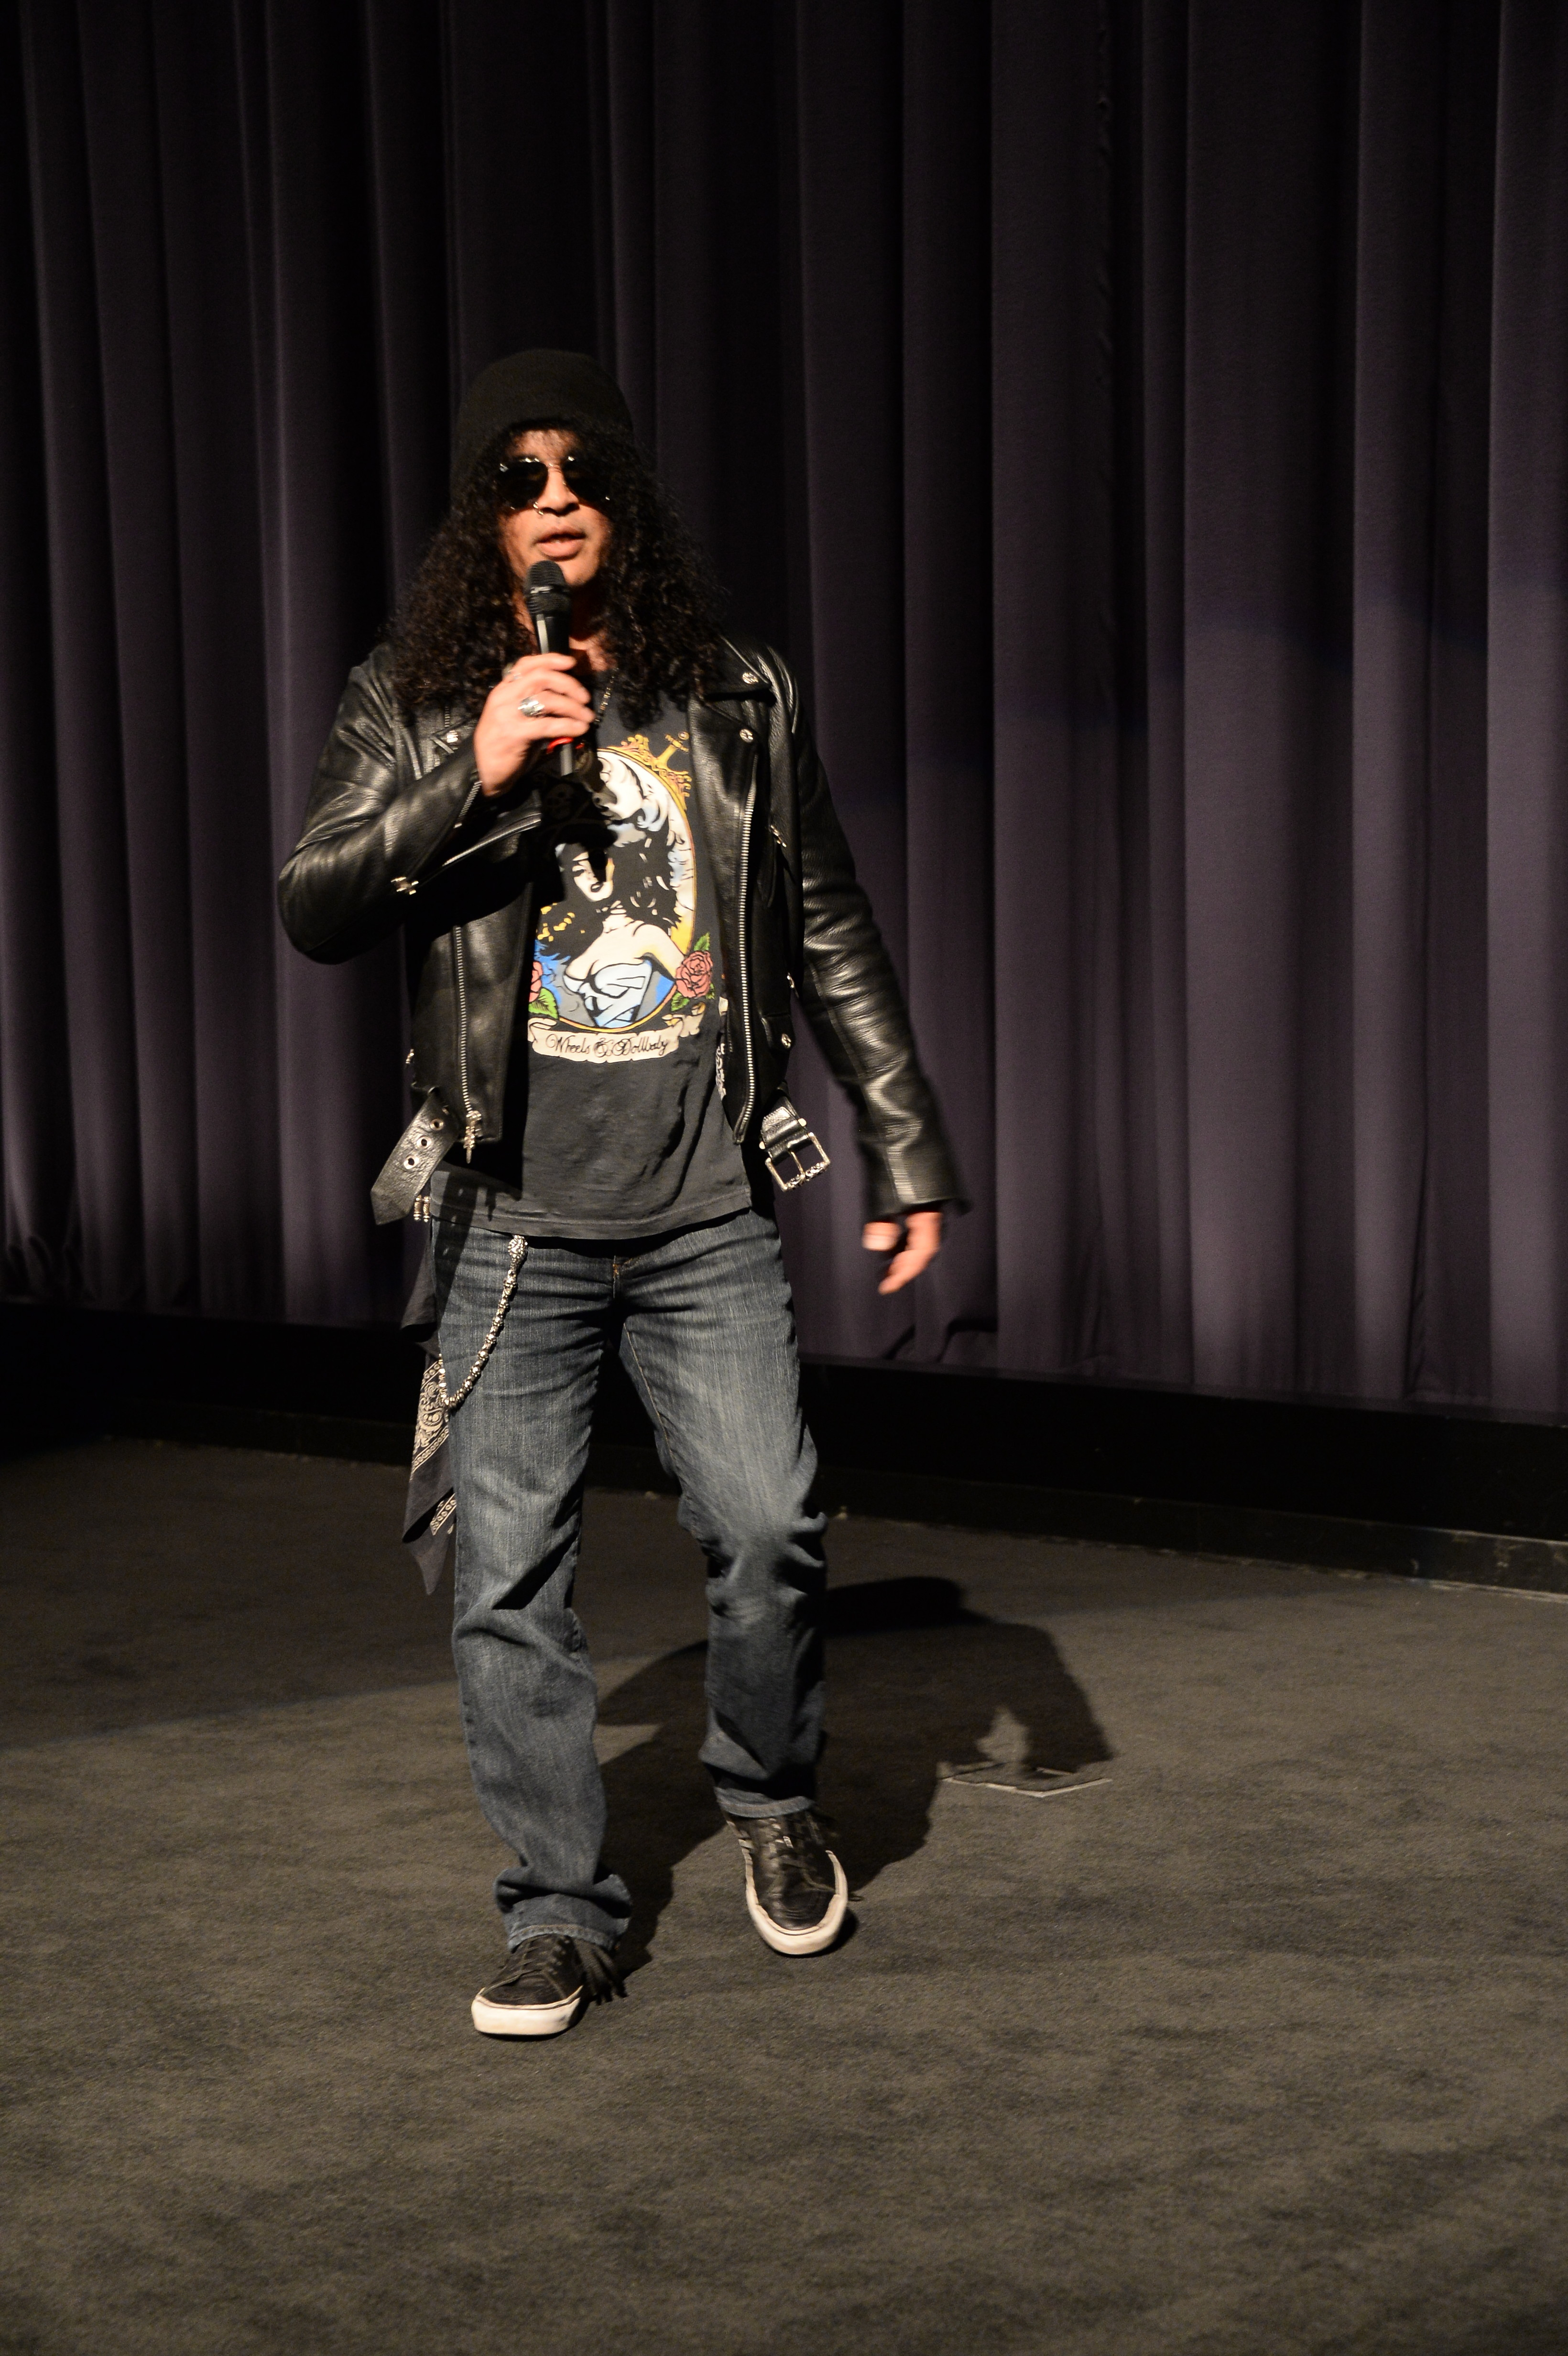 LOS ANGELES, CA - MARCH 10:  Guns N' Roses guitarist Slash attends Coverfield Lane Private Screening hosted By Slash at Paramount Pictures on March 10, 2016 in Los Angeles, California.  (Photo by Frazer Harrison/Getty Images for Paramount Pictures)